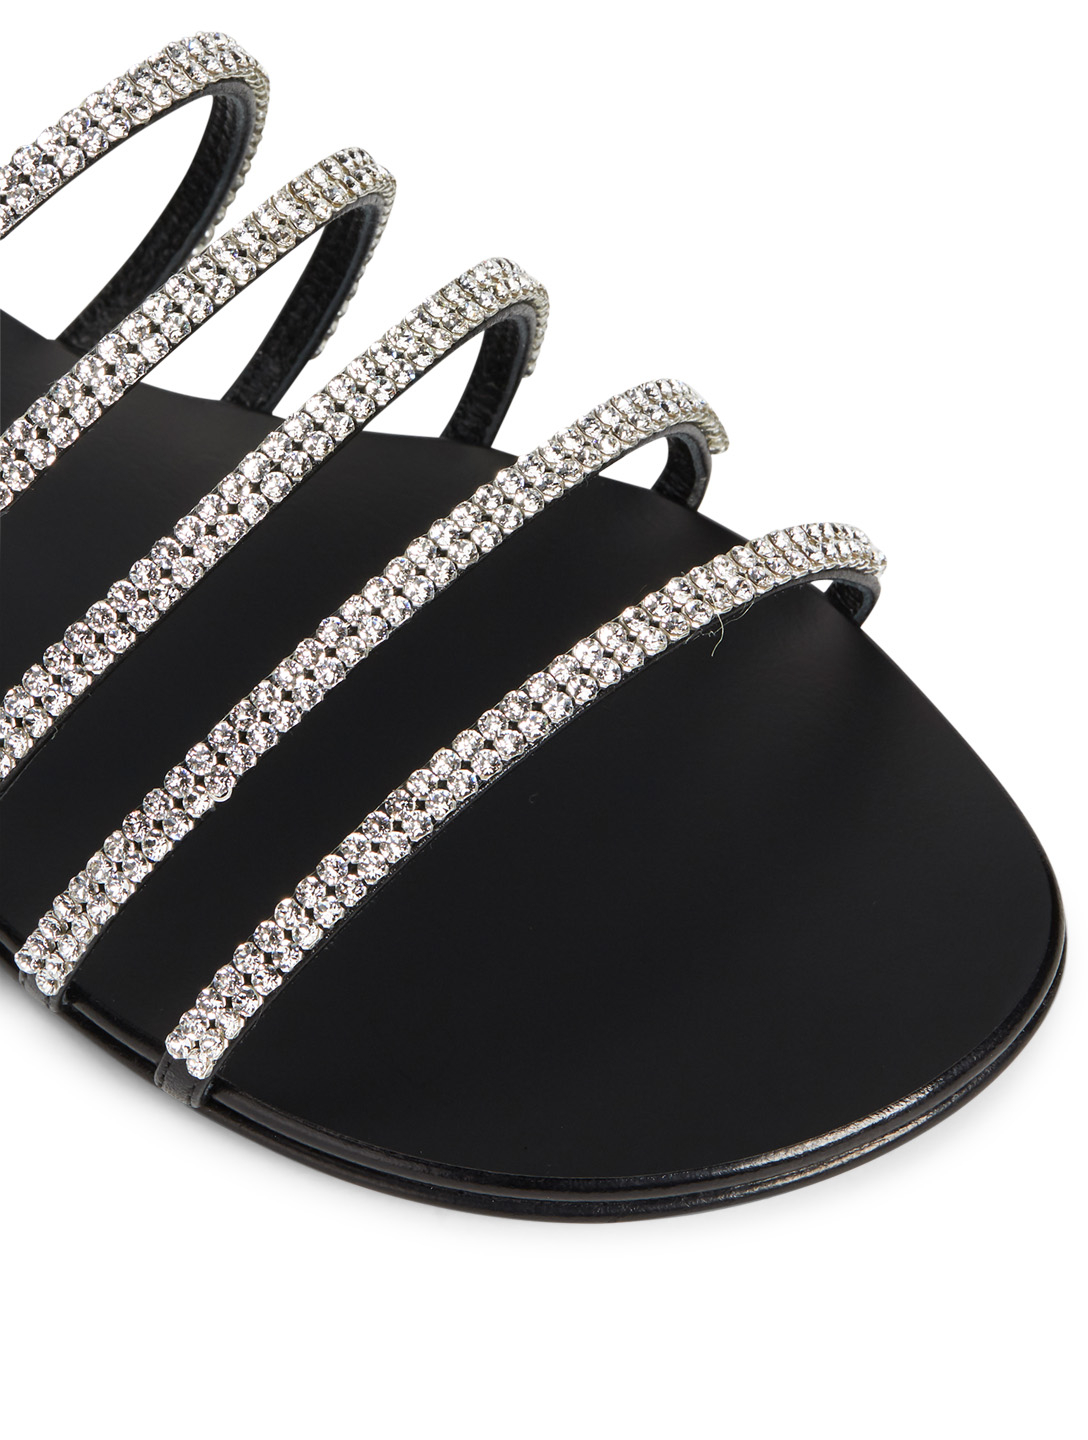 GIUSEPPE ZANOTTI Michela Leather Sandals With Crystals Womens Black